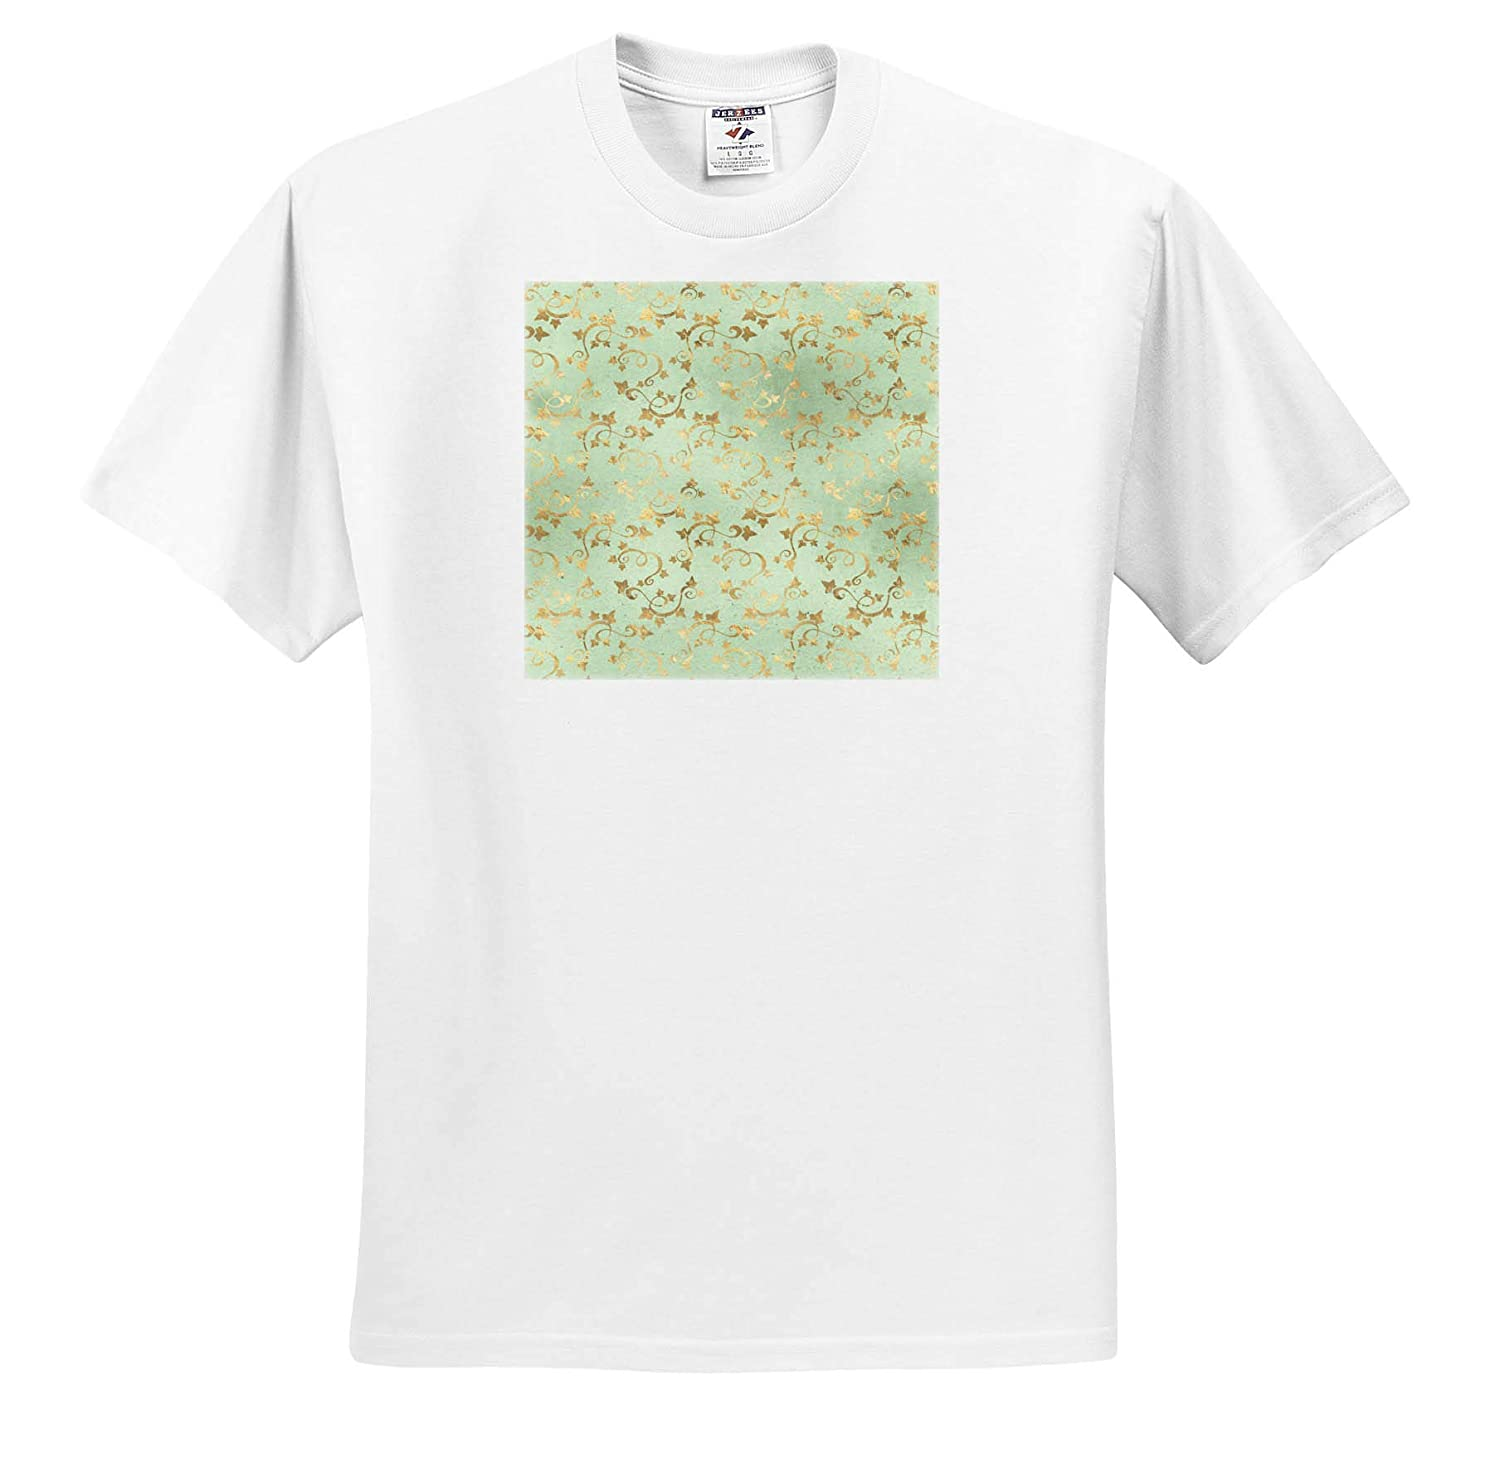 ts/_309748 3dRose Anne Marie Baugh Adult T-Shirt XL Pretty Image of Gold Ivy Leaves On Soft Green Pattern Patterns